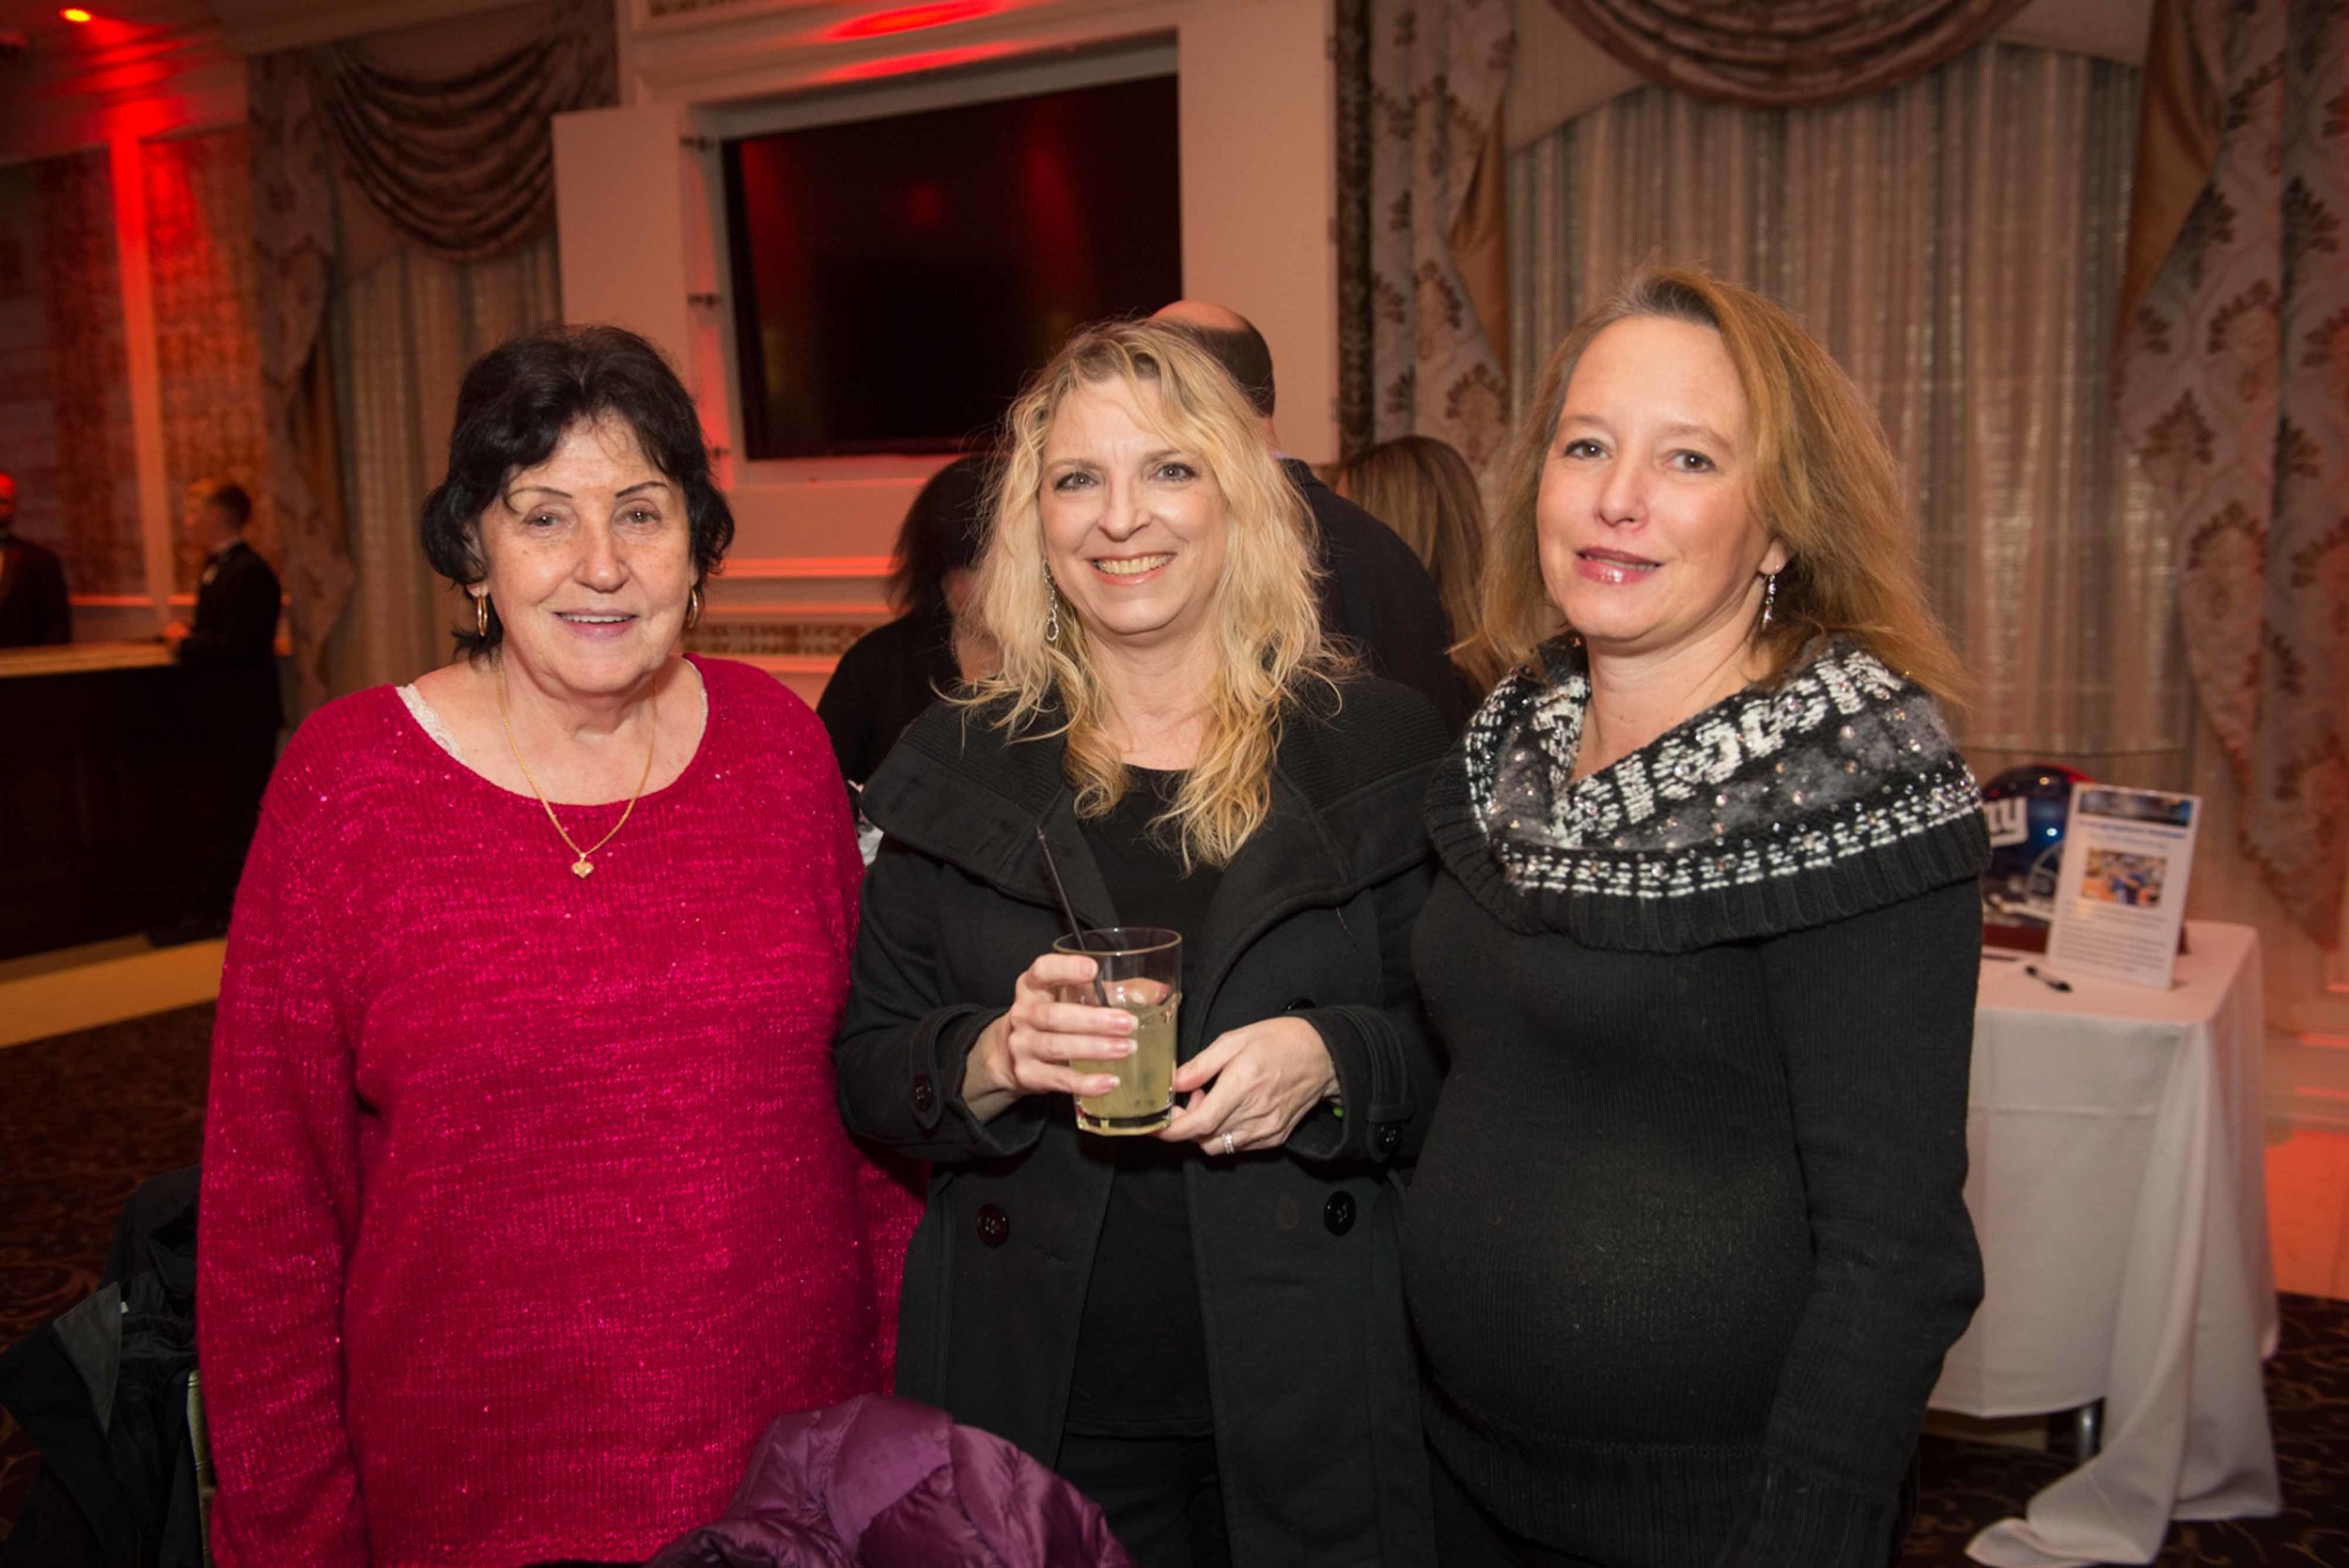 2017-11-10 The EPIC School - Party with a Purpose - Biagios on the Terrace - Paramus NJ-42.jpg